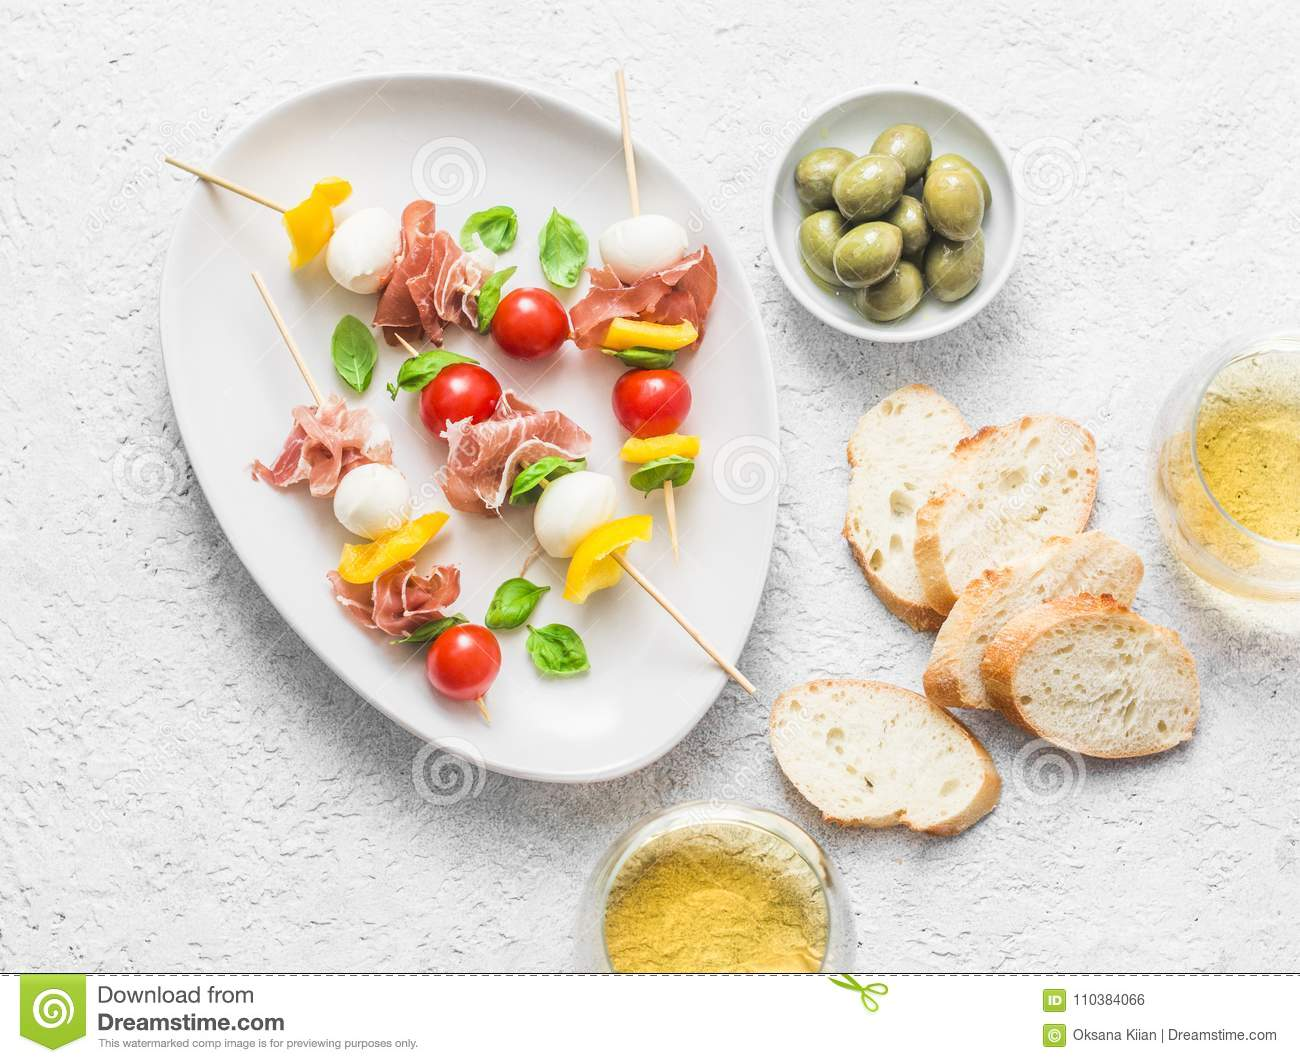 Antipasto skewers. Mediterranean appetizer to wine - prosciutto, bell peppers, cherry tomatoes, mozzarella cheese on skewers and w